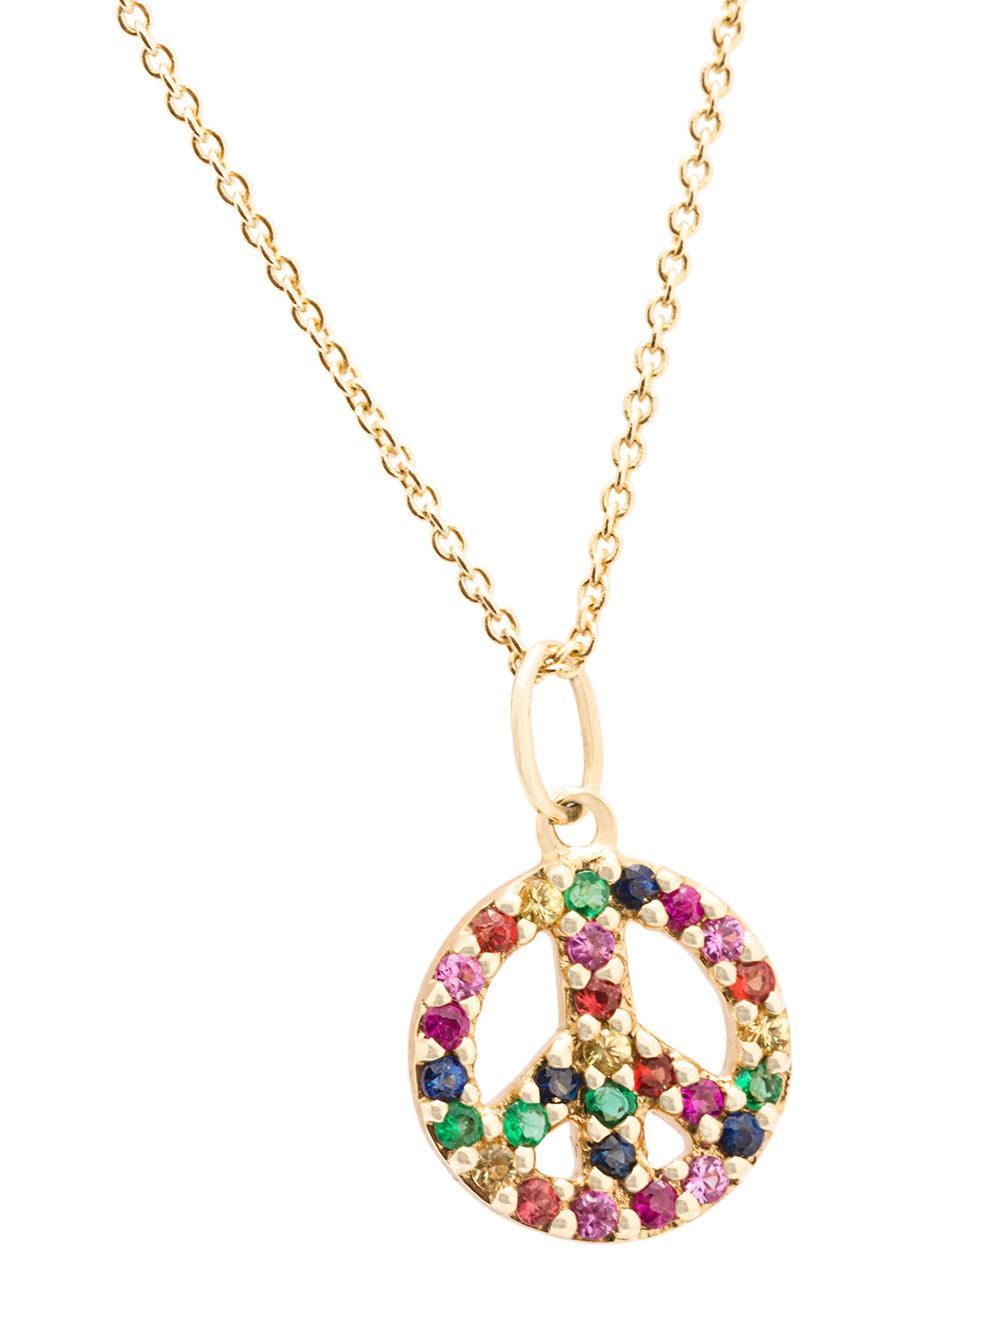 Sydney Evan small 14kt yellow gold gemstone peace necklace Low Shipping Sale Online sNXw3GeZNF